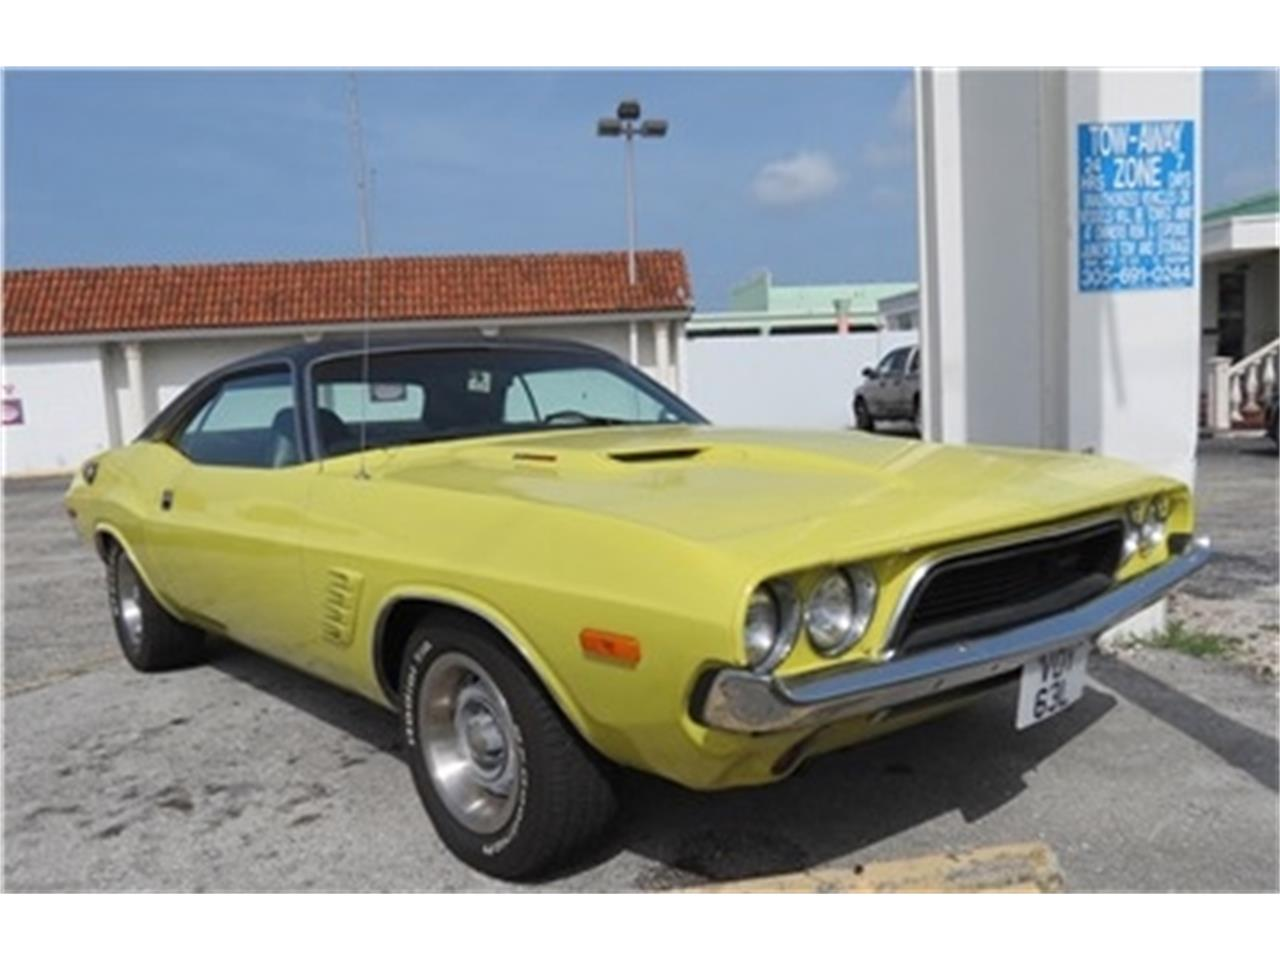 for sale 1973 dodge challenger in miami, florida cars - miami, fl at geebo